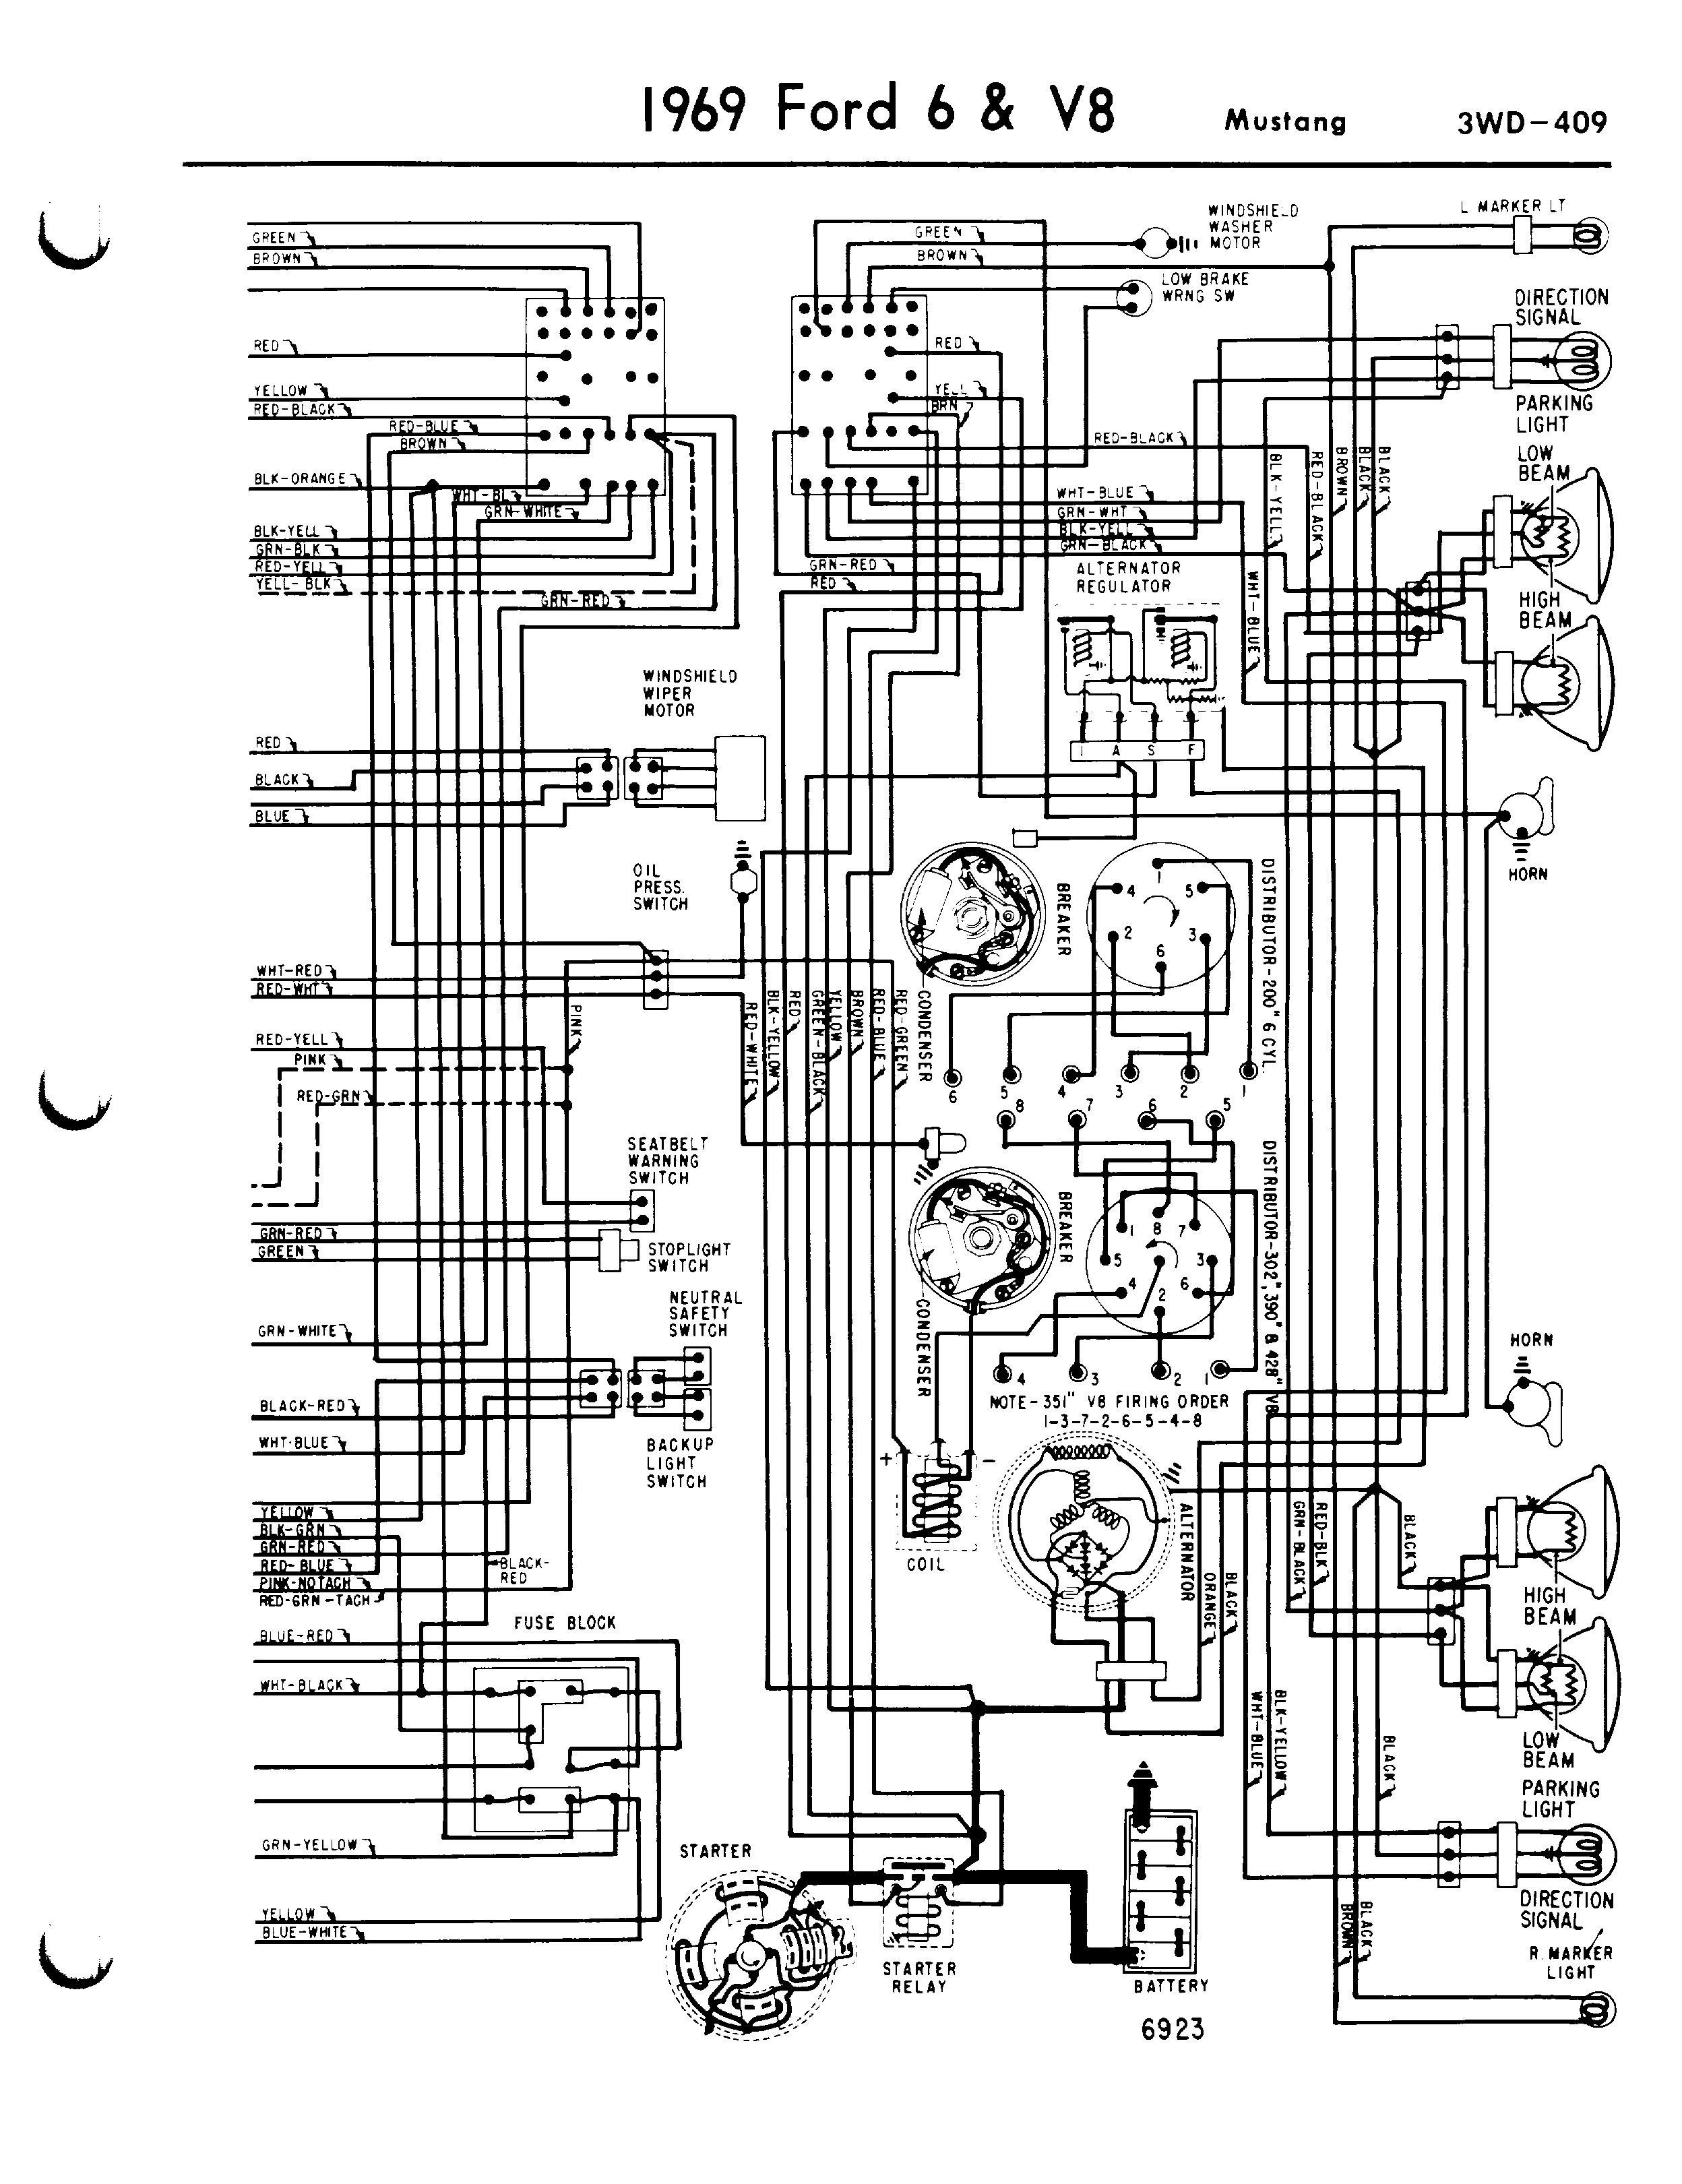 1968 Mustang Wiring Diagram ford Diagrams with Mustang Wiring Diagram  Blurts Of 1968 Mustang Wiring Diagram. 1968 Mustang Wiring Diagram Mustang  Turn Signal ...